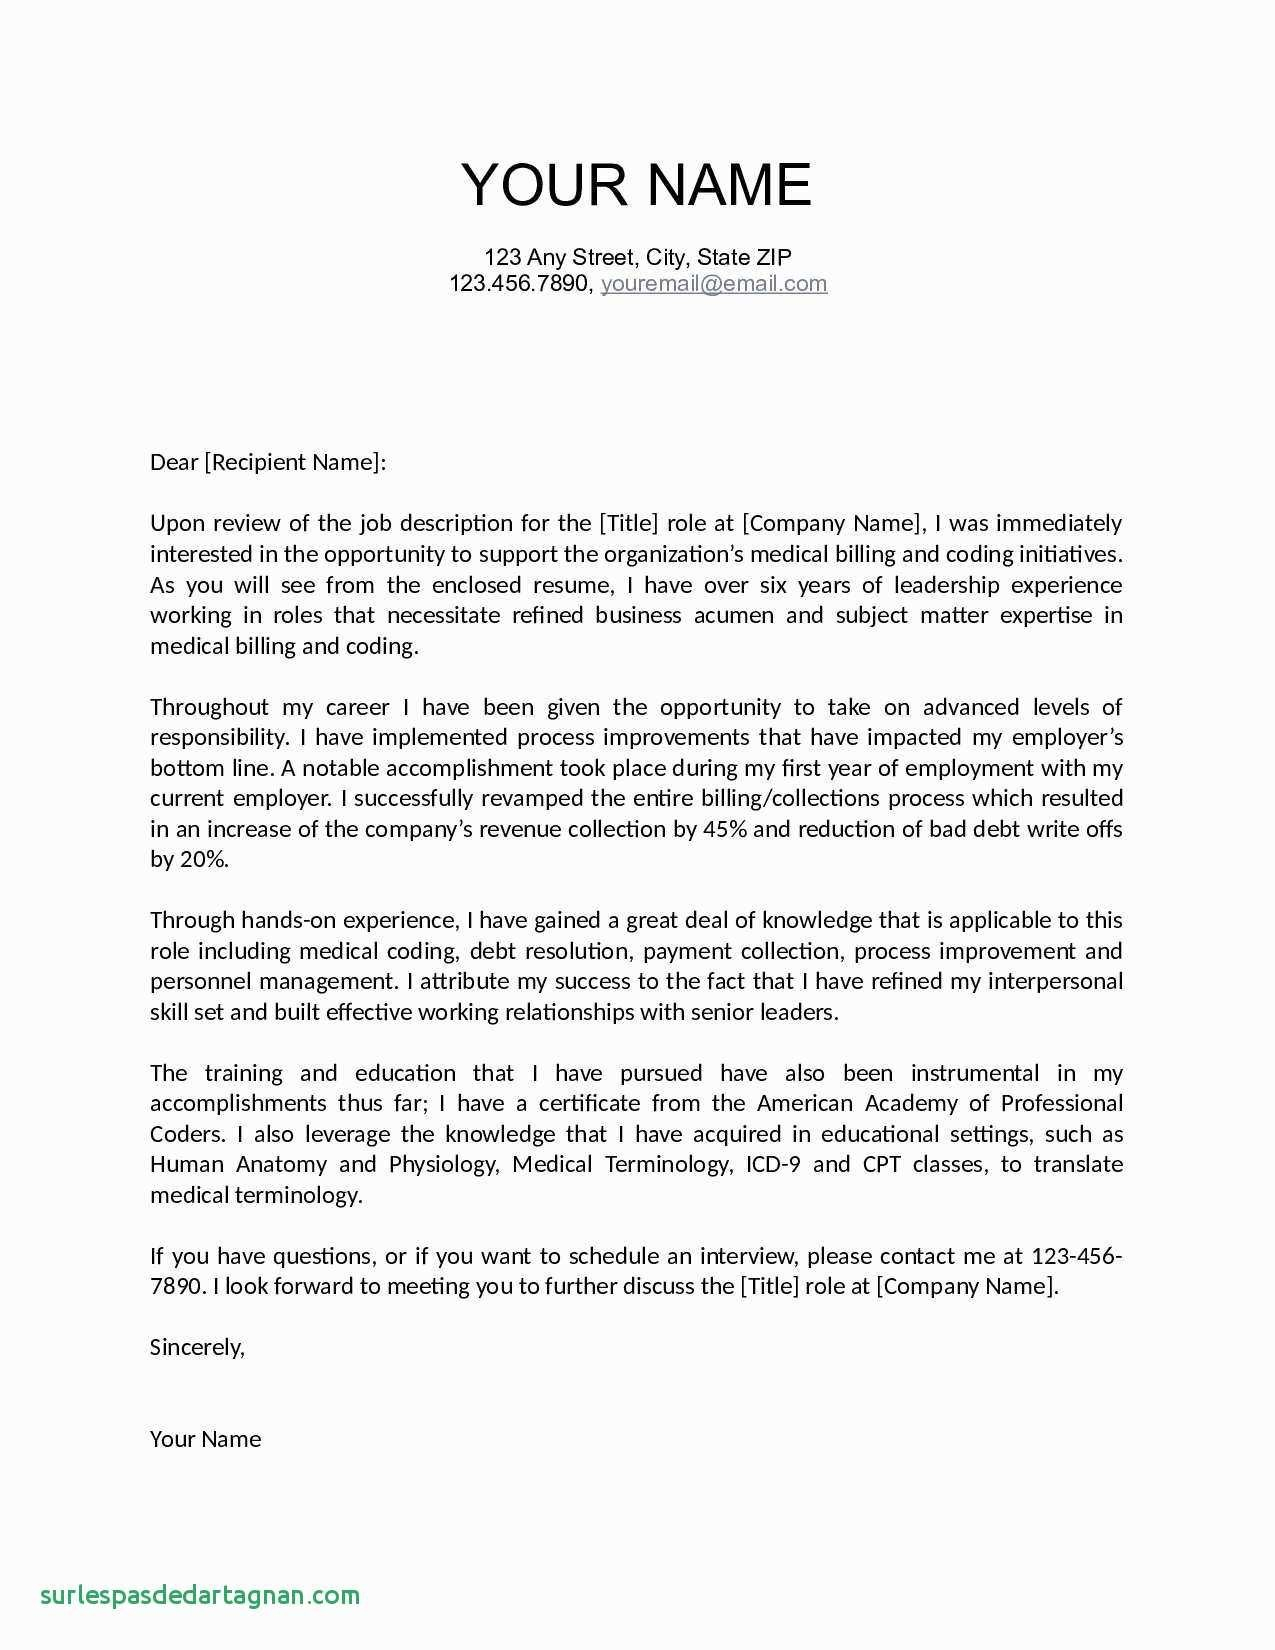 Loan Application Letter Template - Cover Letter Examples for Credit Union Job Save Fresh Job Fer Letter